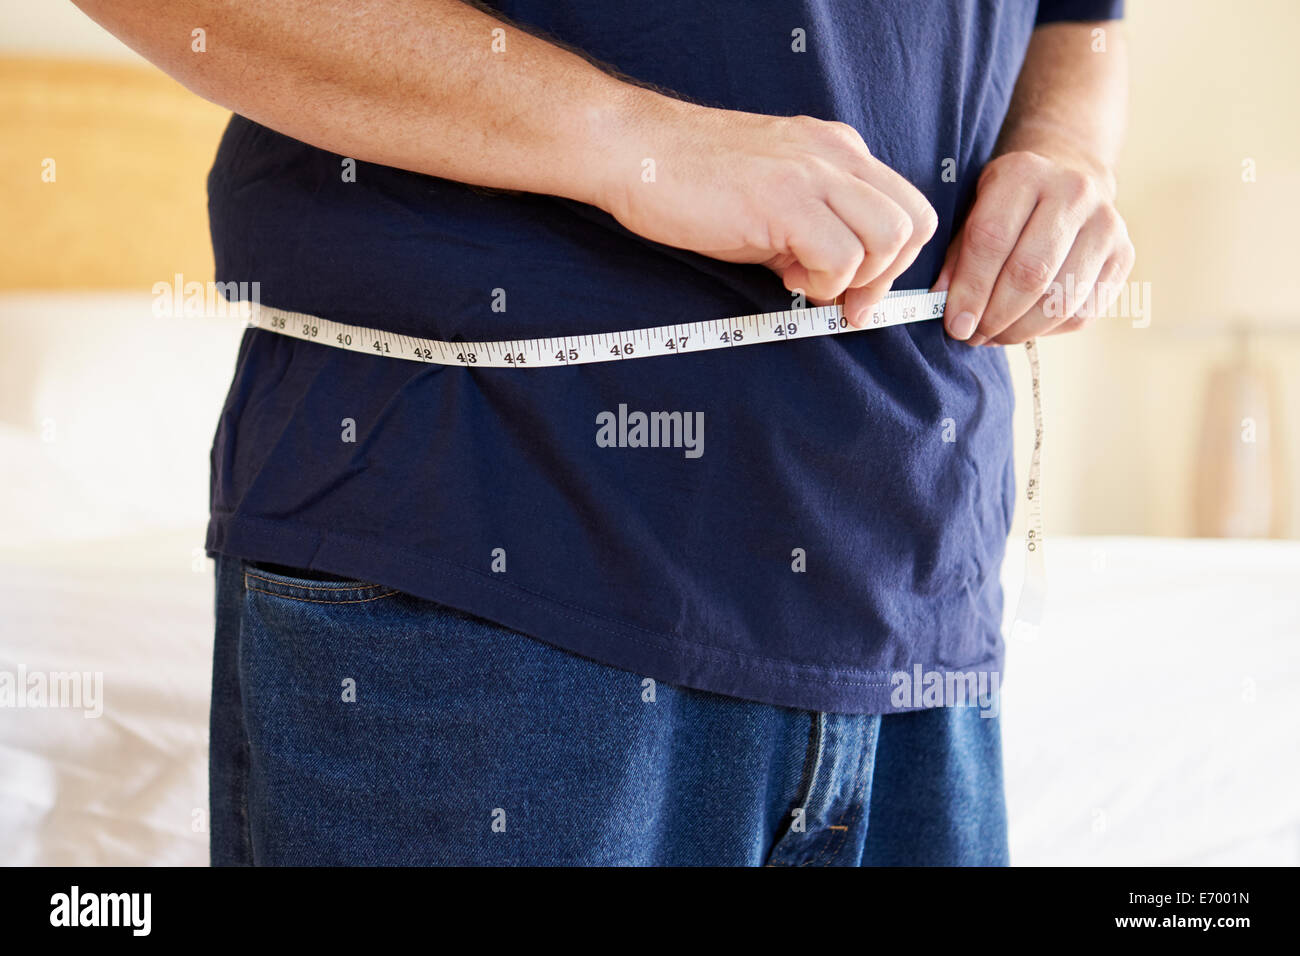 Close Up Of Overweight Man Measuring Waist - Stock Image